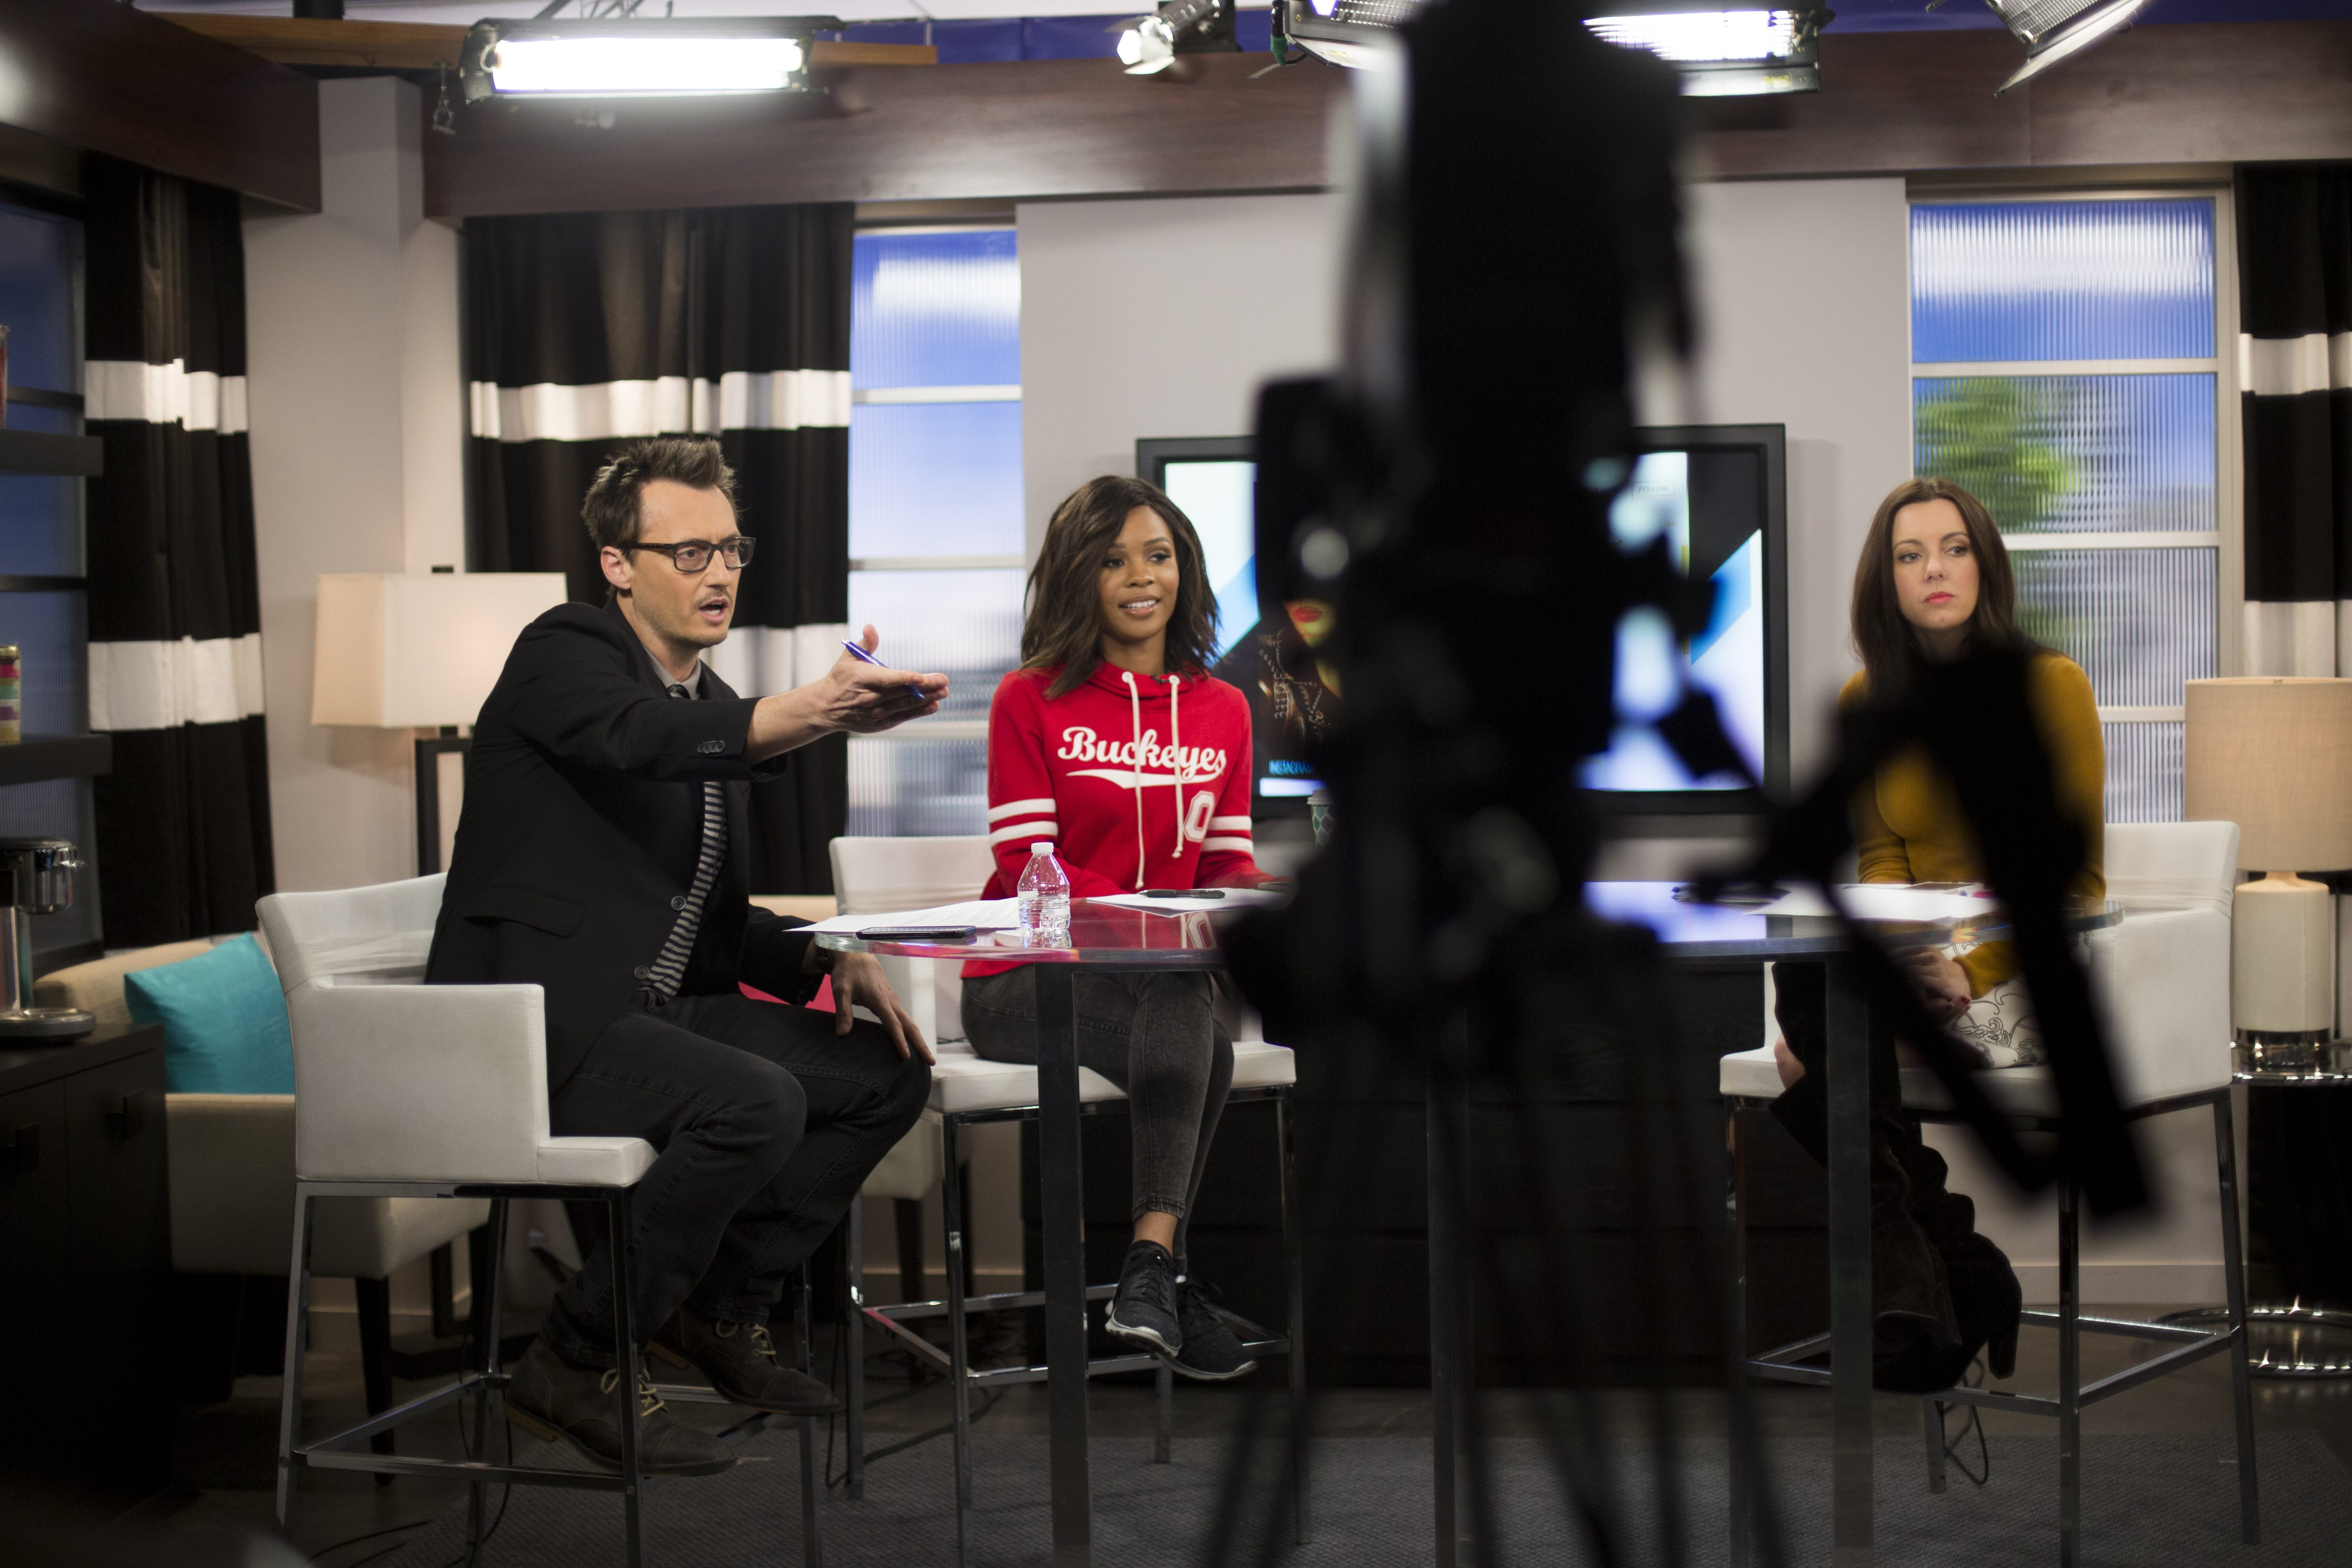 Ken Baker co-hosts Live from E! with Zuri Hall, center, and Melanie Bromley in Los Angeles, Ca., on Tuesday, Feb. 2, 2016. (© Jenna Schoenefeld. No usage without permission.)